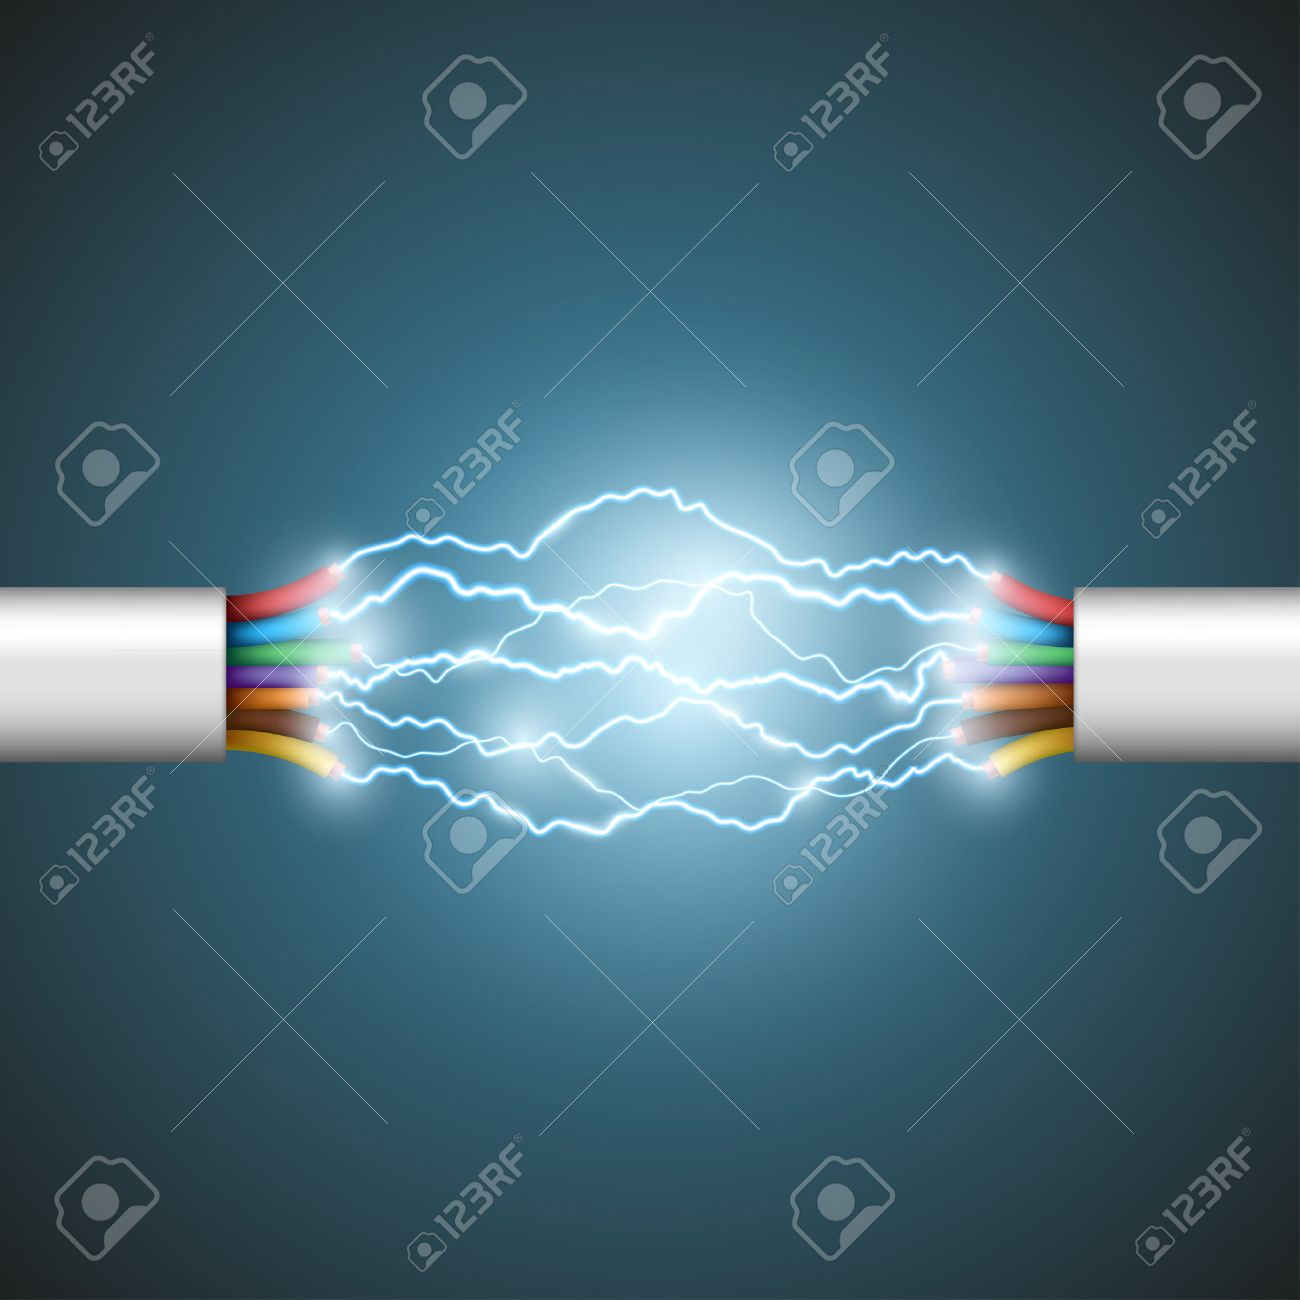 Electric arc between the wires. Electrical circuit. Stock Vector. - 47077108